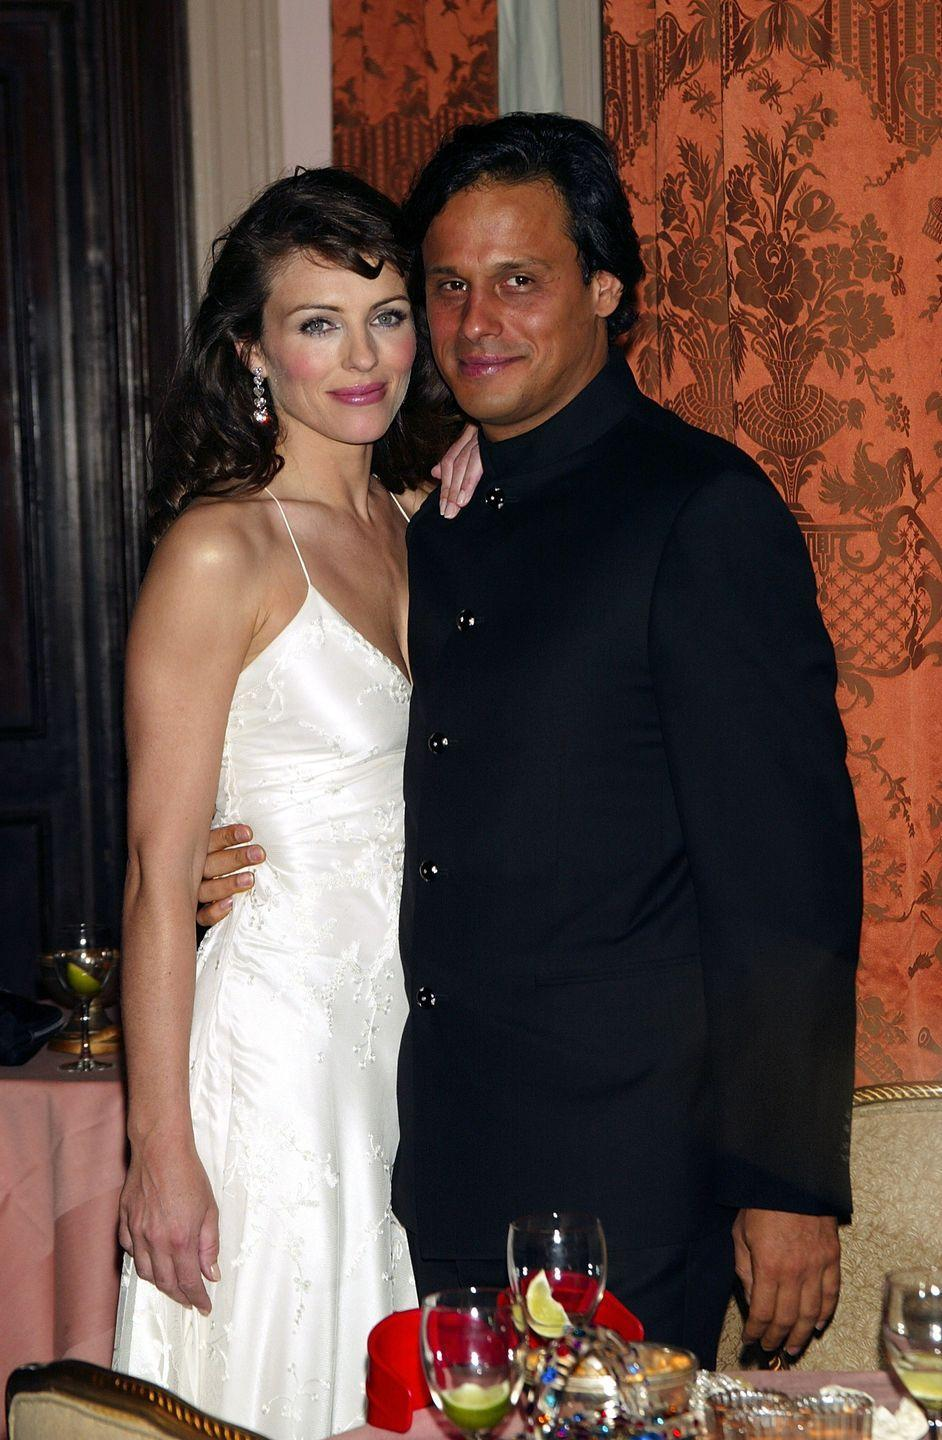 <p>In late 2002, Elizabeth started dating Indian textile heir Arun Nayar. Here they are at the Breast Cancer Research Foundation's Annual Spring Gala at the Waldorf-Astoria Hotel in 2003 with him.</p>